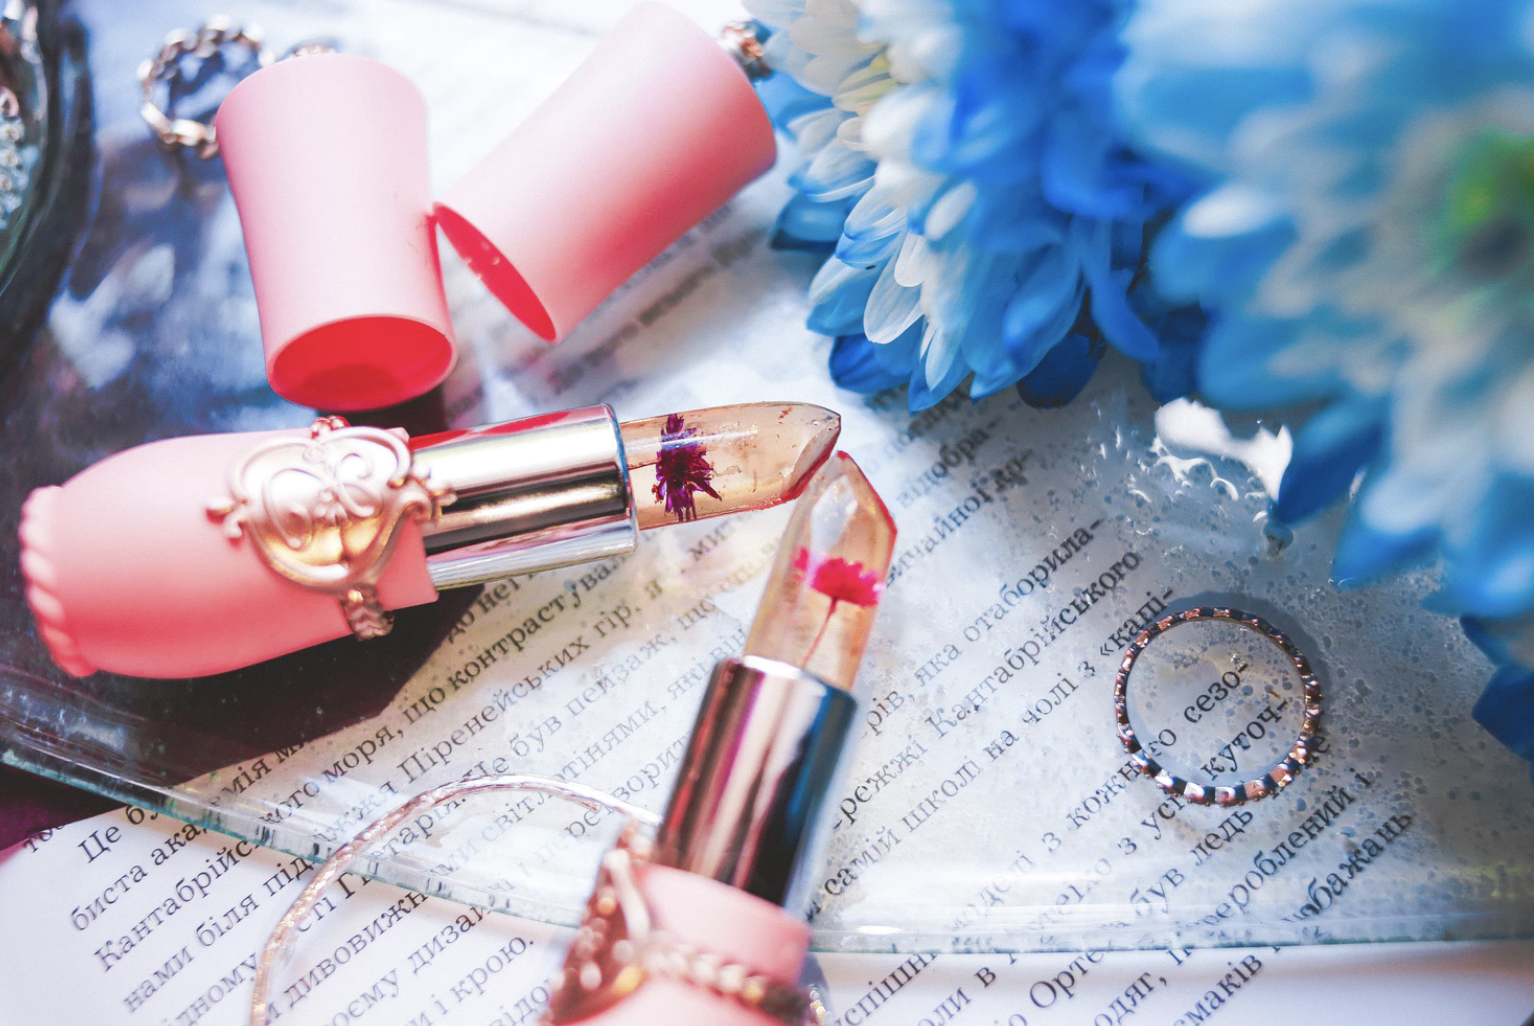 2019 most popular lipstick shades that never trends out